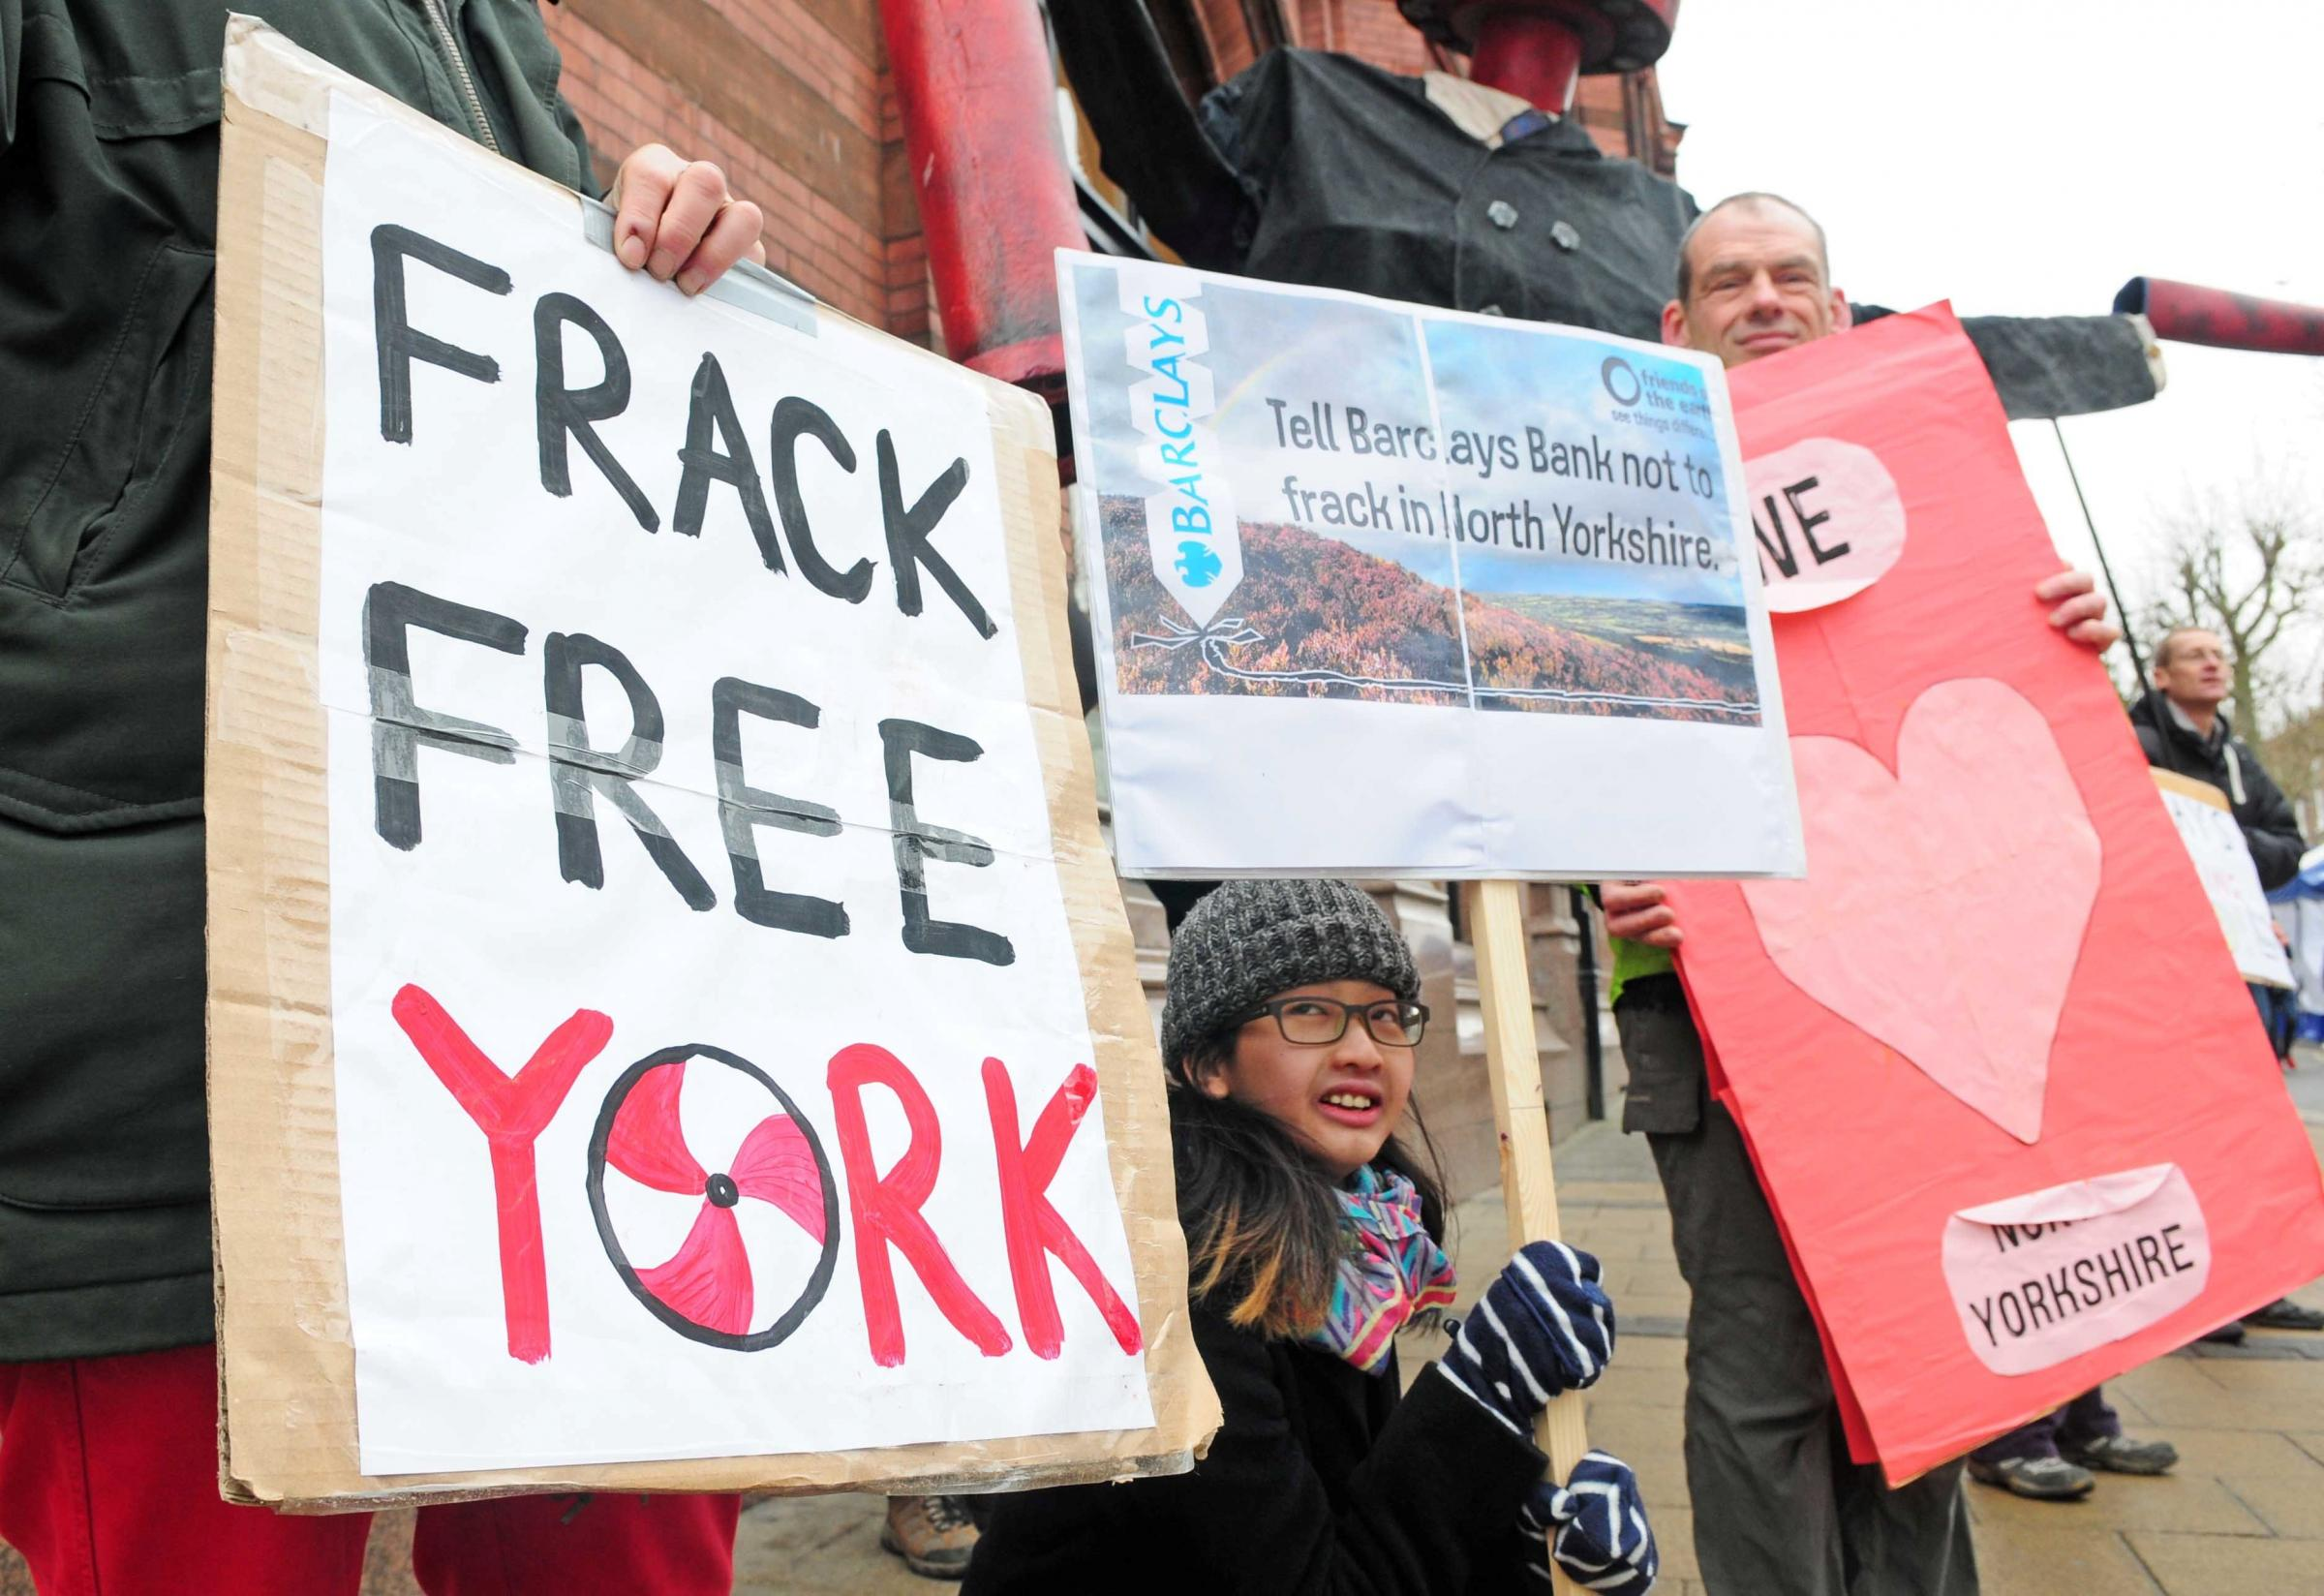 Anit fracking protesters pictured outside Barclays bank in York City centre...pic: Anthony Chappel-Ross.